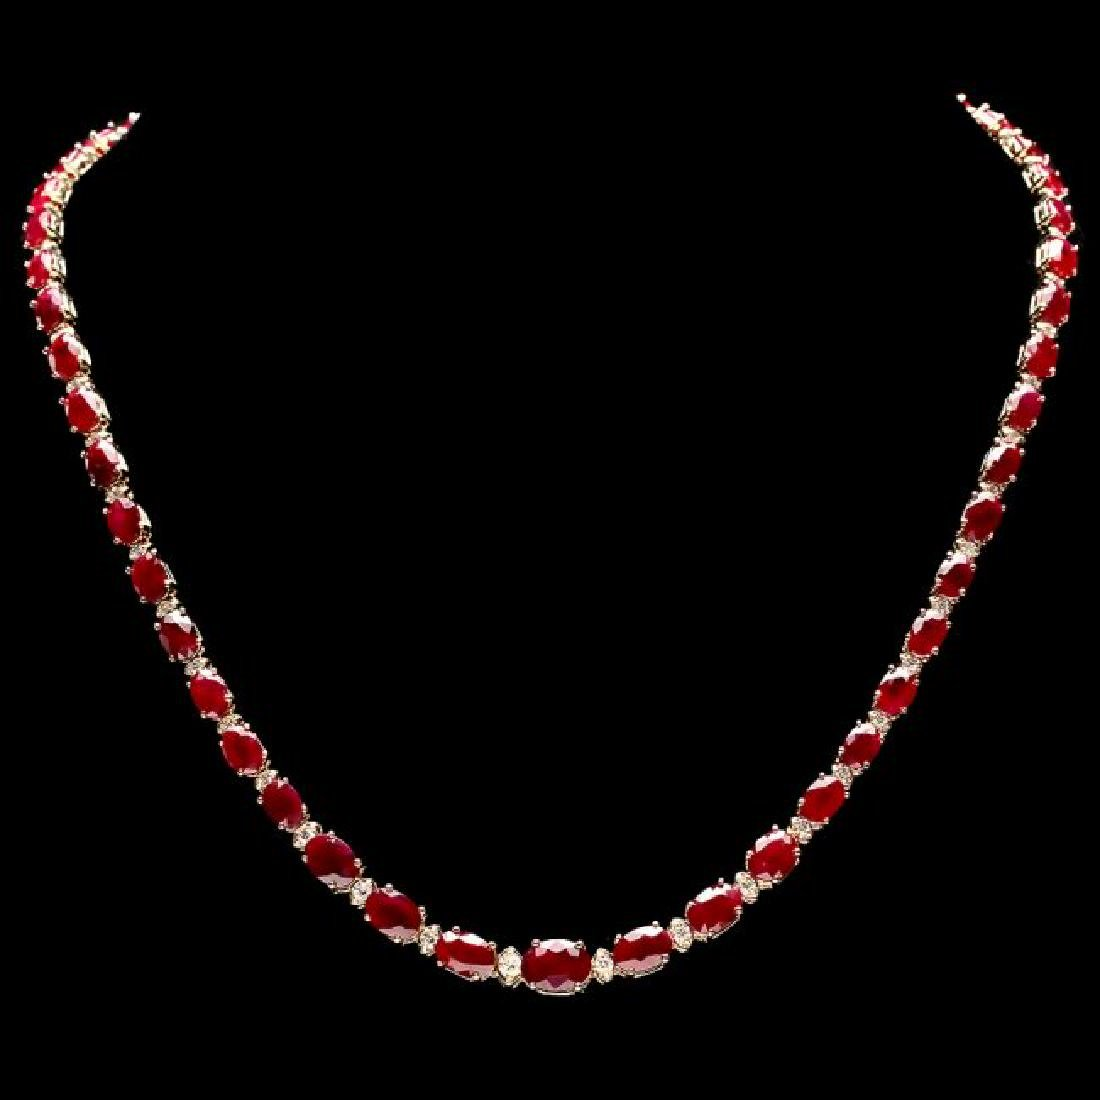 14k Gold 33.00ct Ruby 1.15ct Diamond Necklace